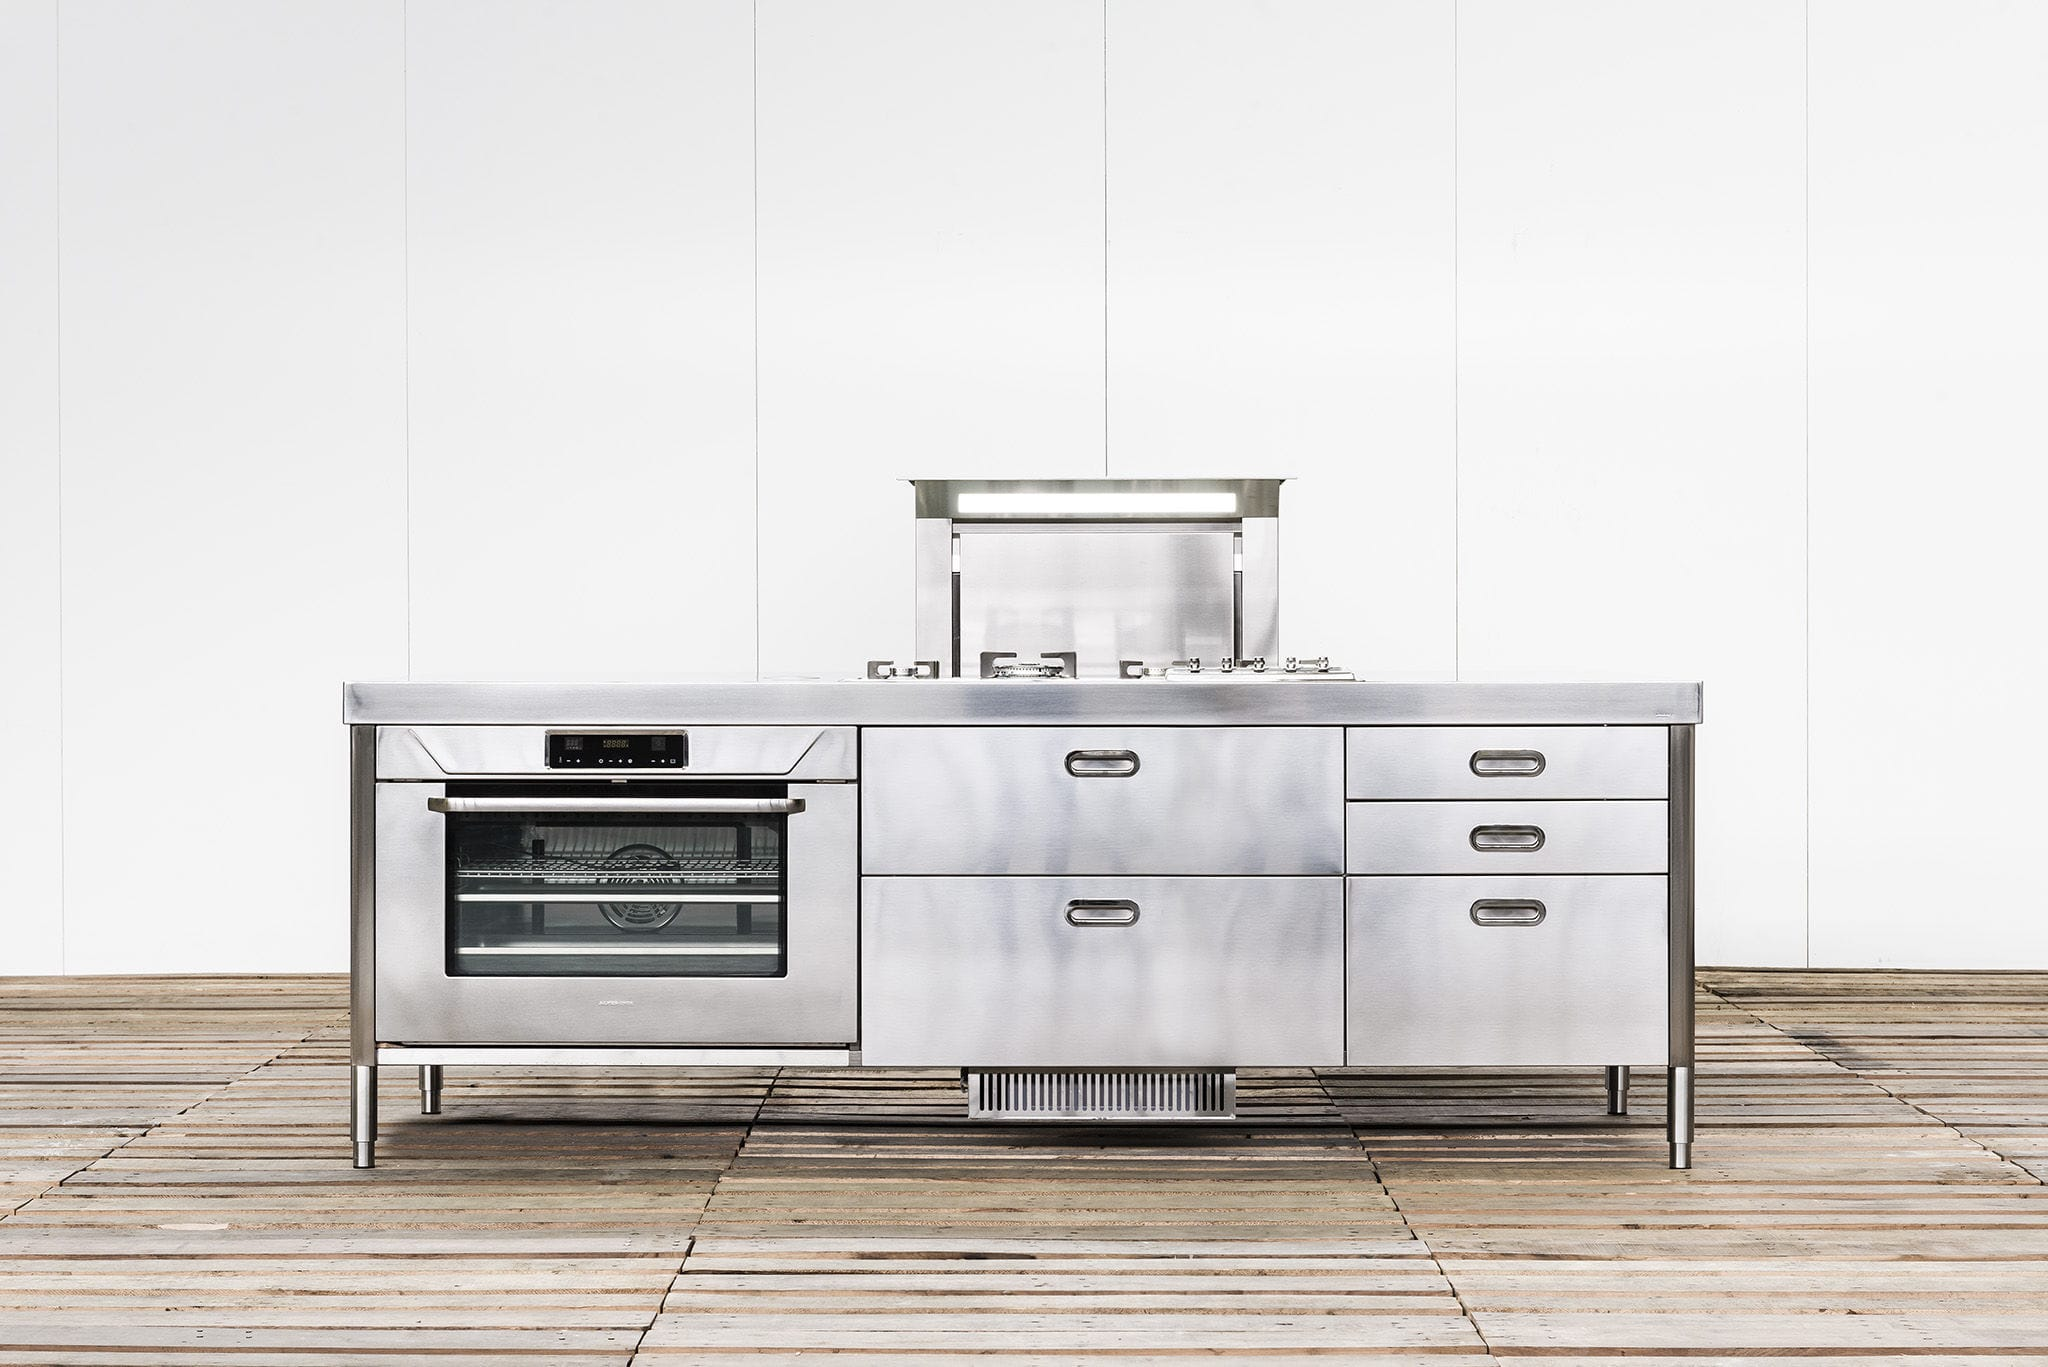 contemporary kitchen island 250 with built in extractor hood contemporary kitchen island 250 with built in extractor hood alpes inox